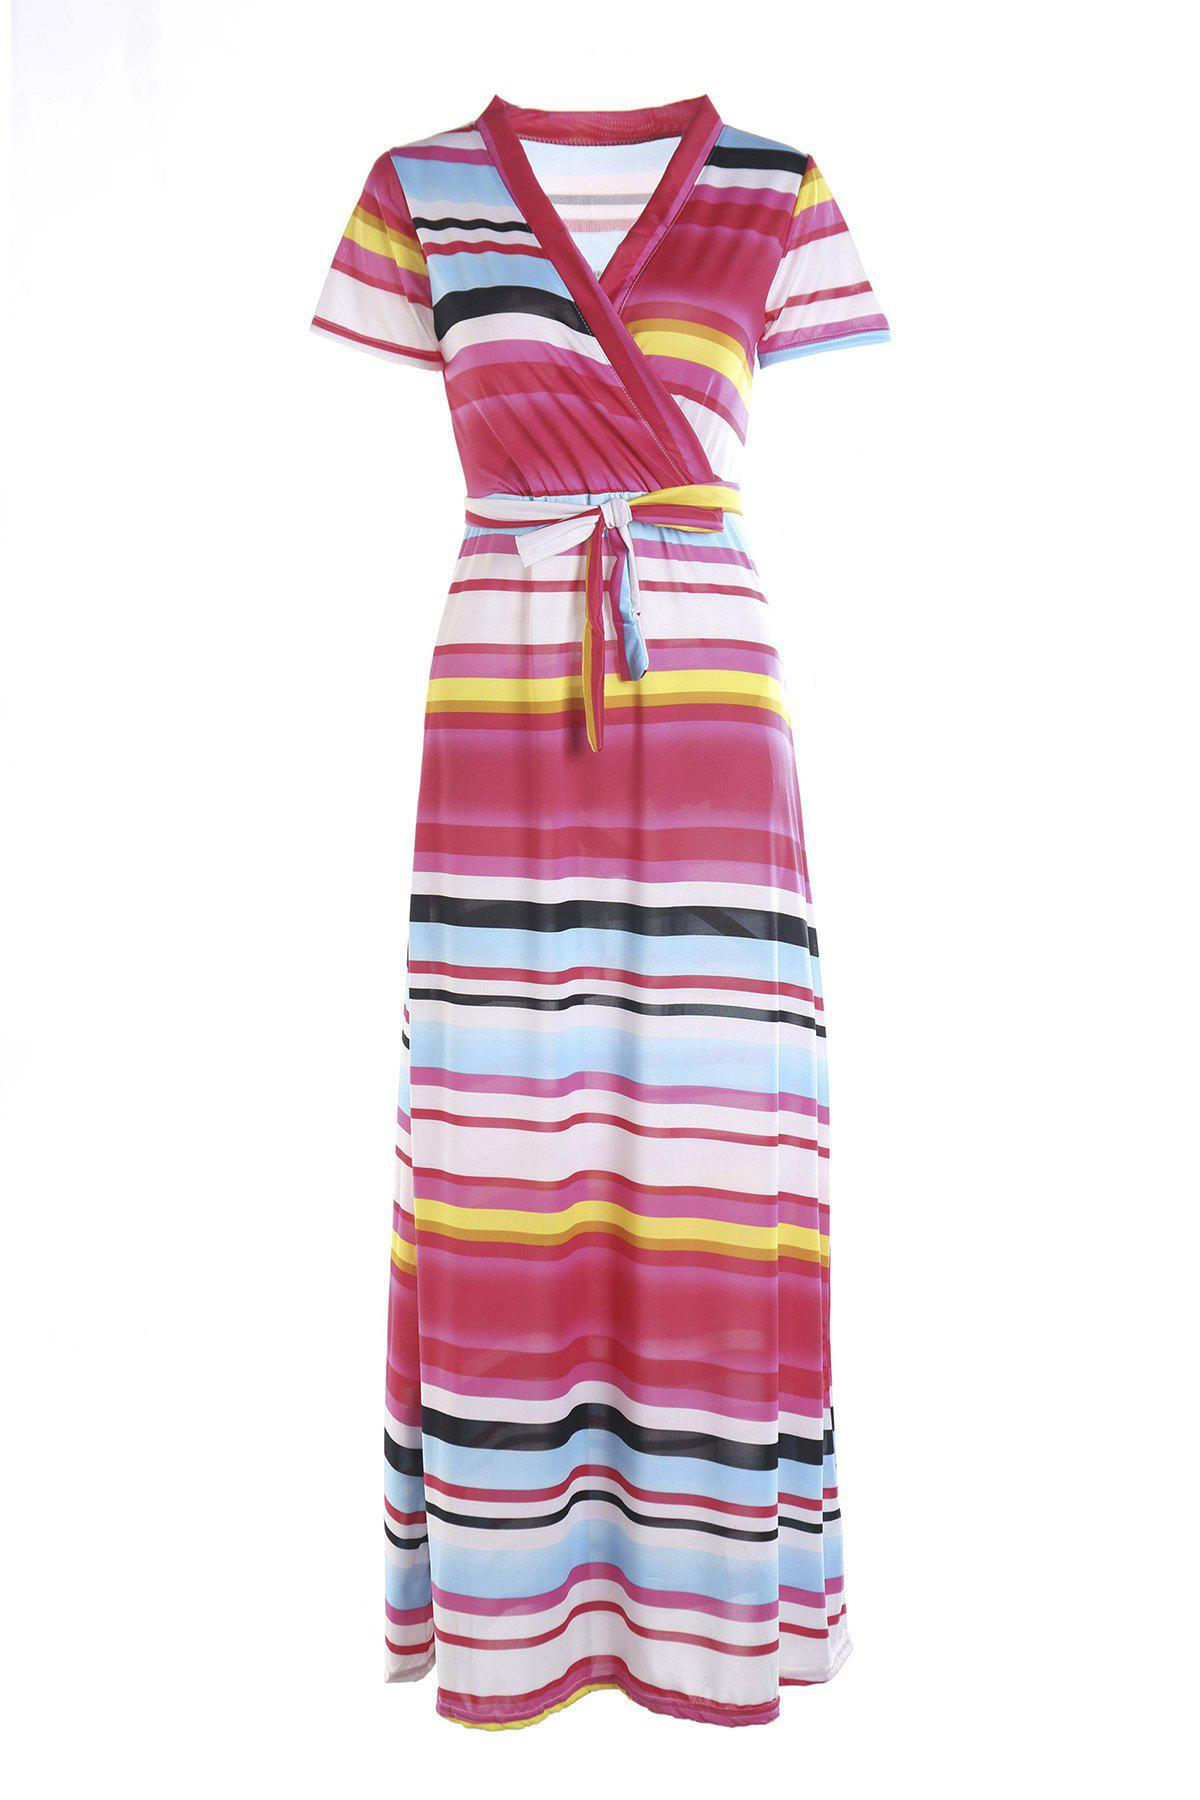 Alluring Short Sleeves Plunging Neck Striped Women's Maxi Dress